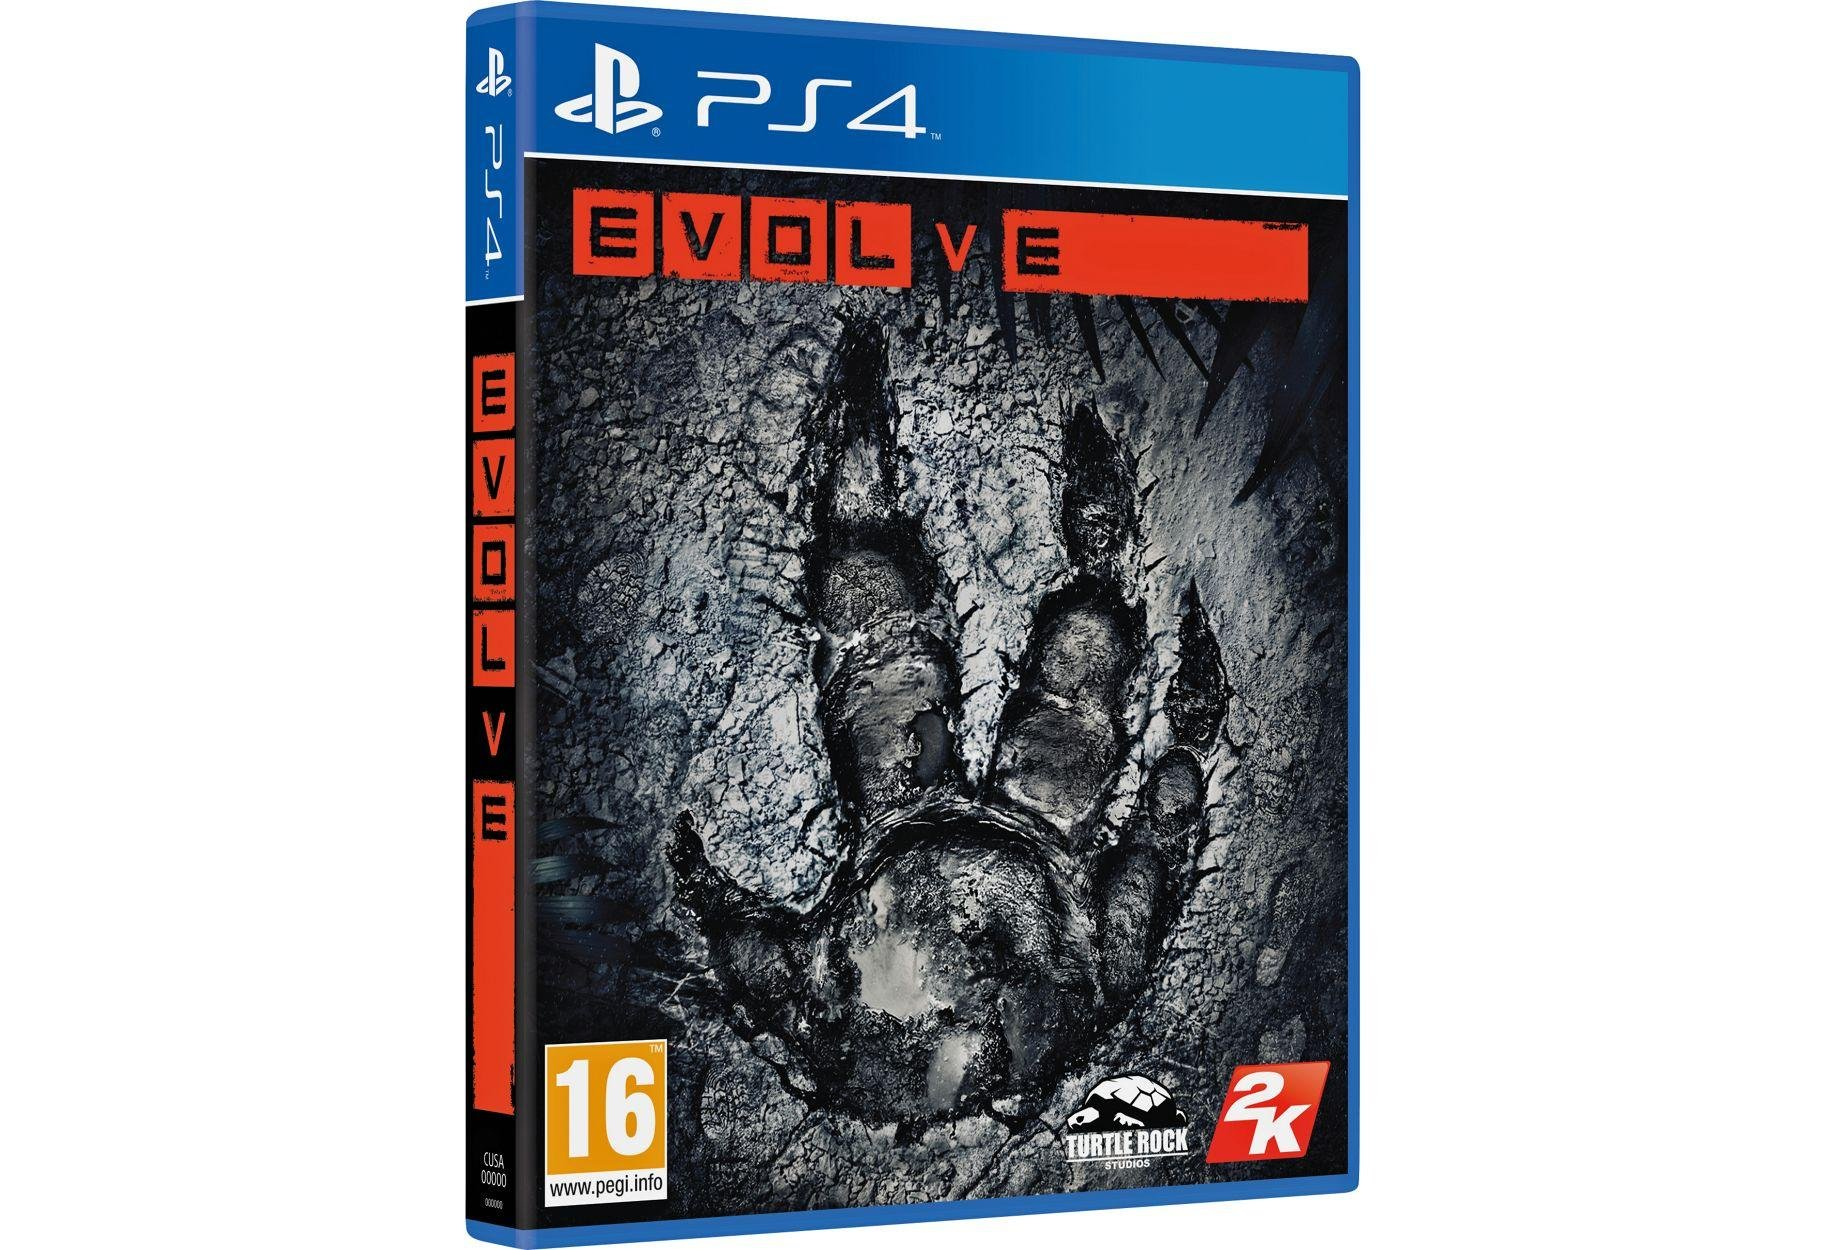 Image of Evolve - PS4 Game.